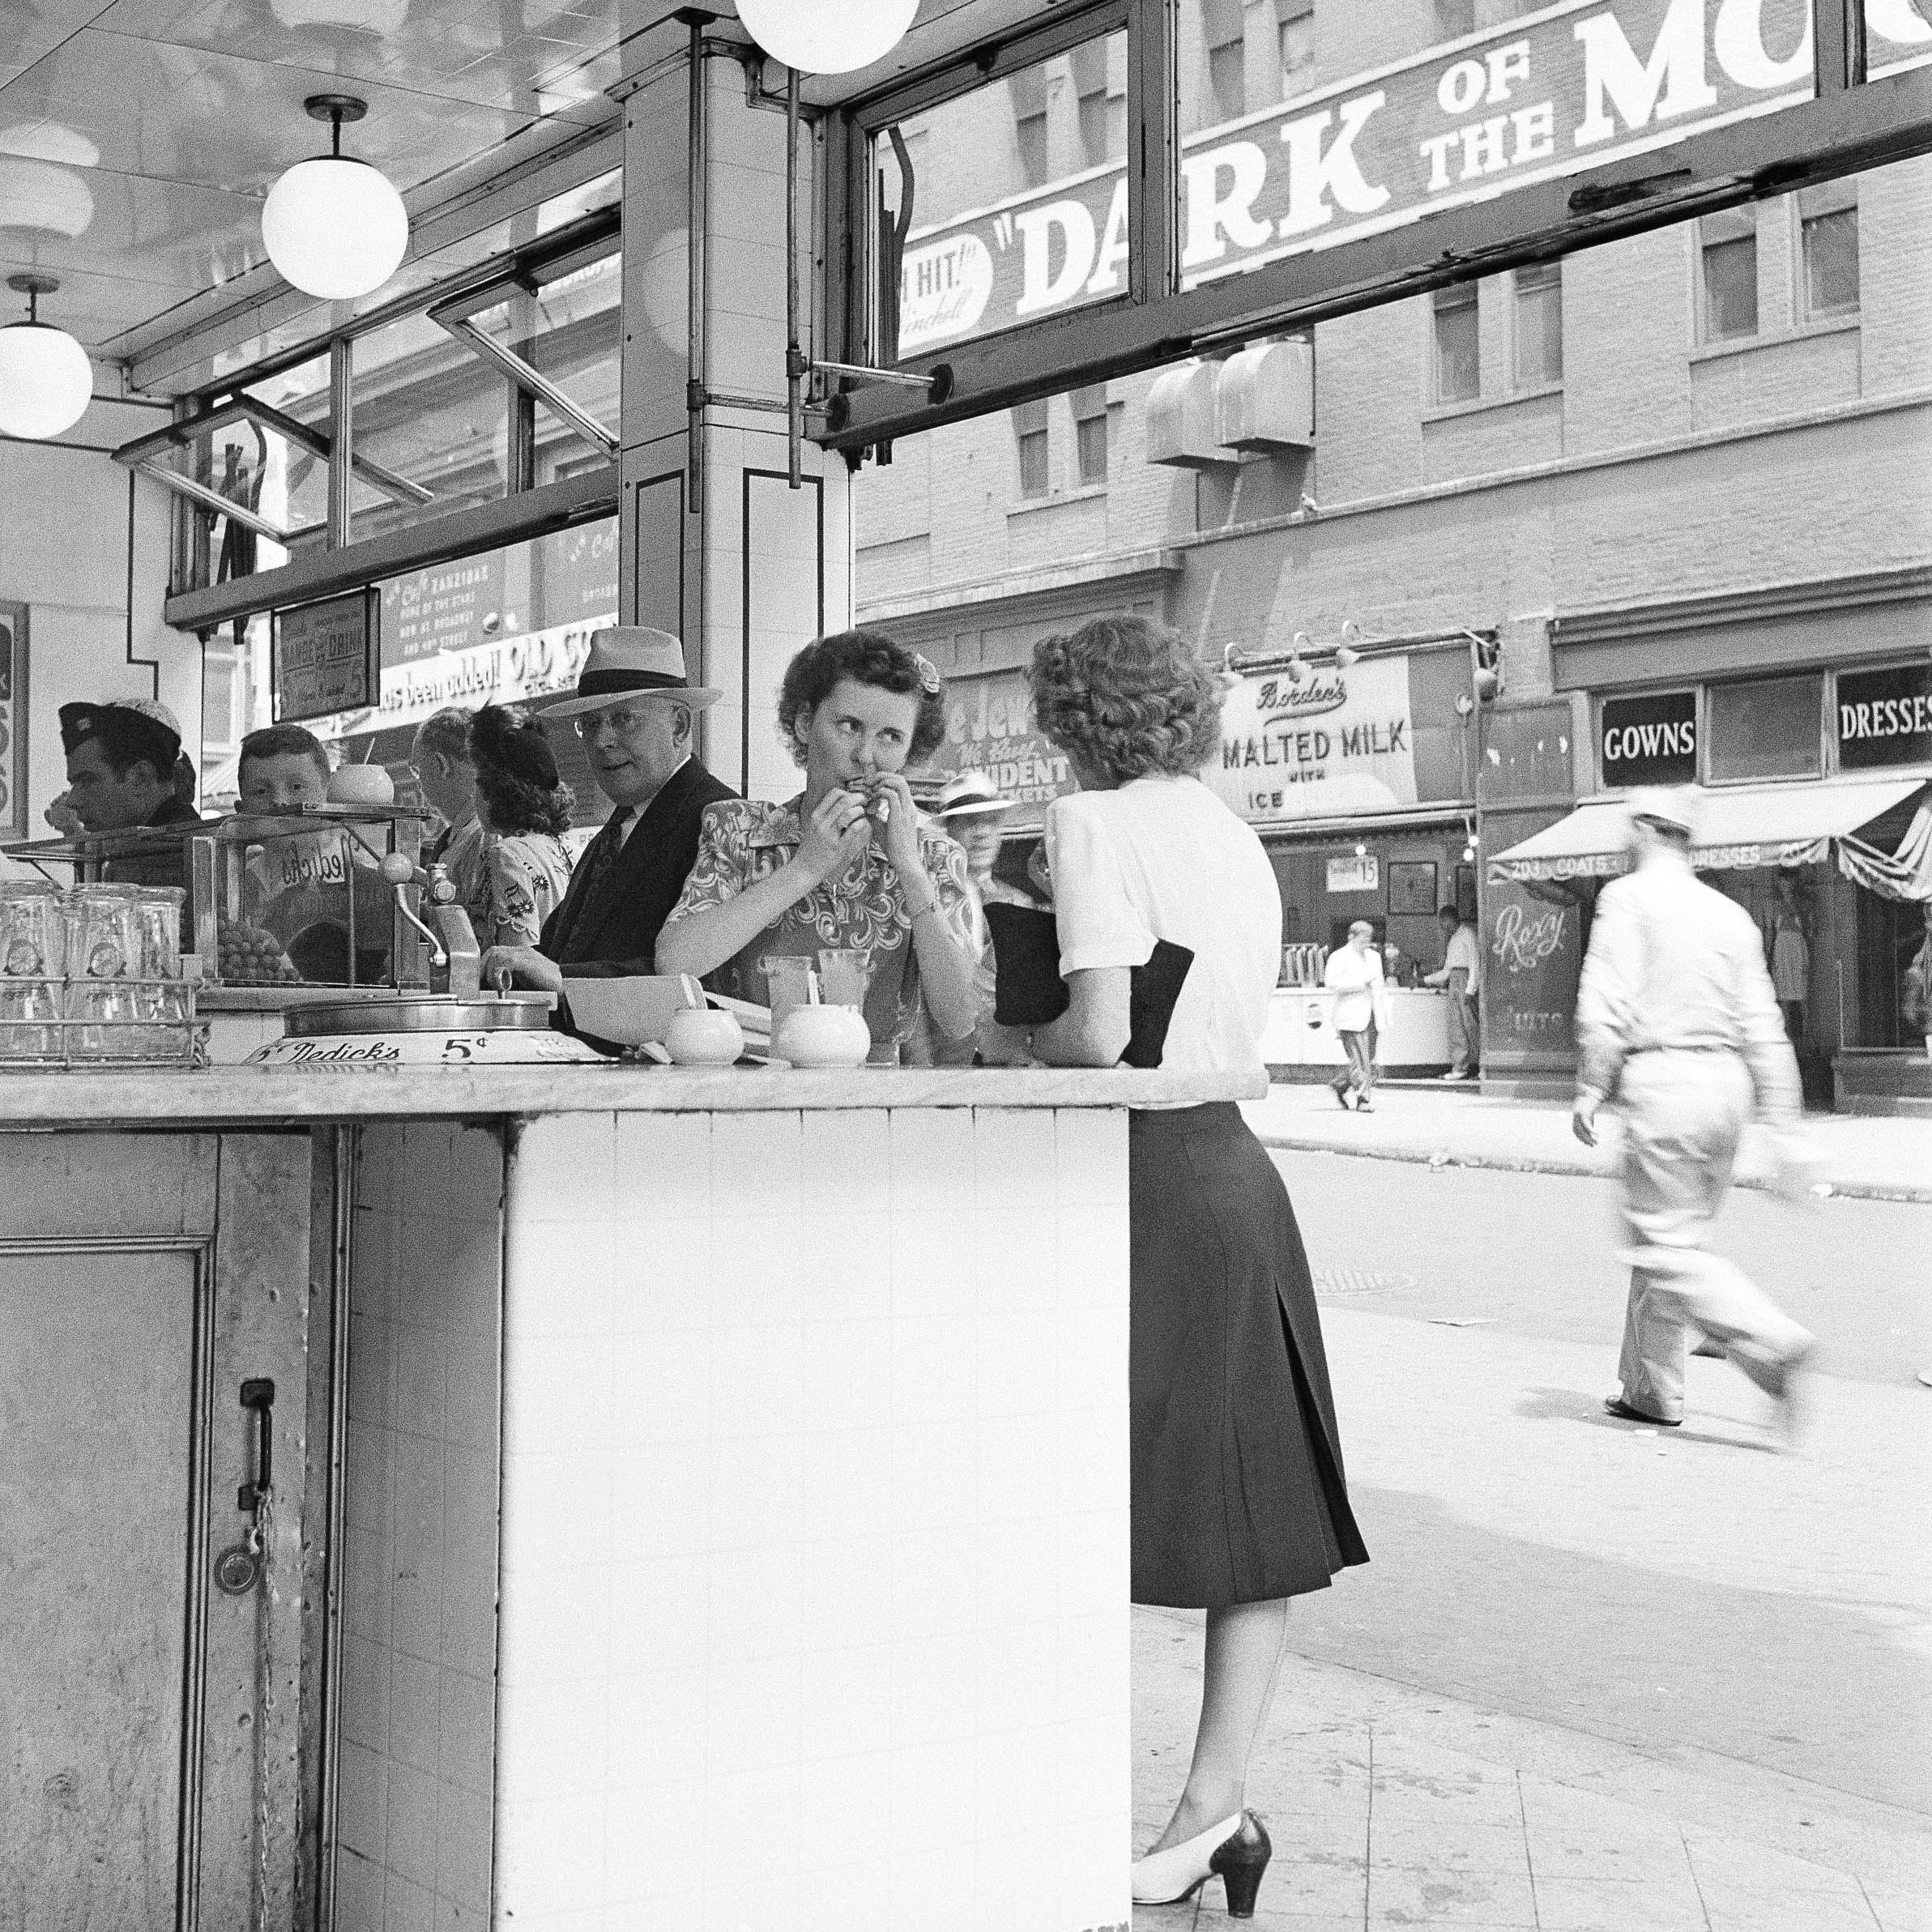 A crowded soda fountain on Broadway in New York City, 1945.